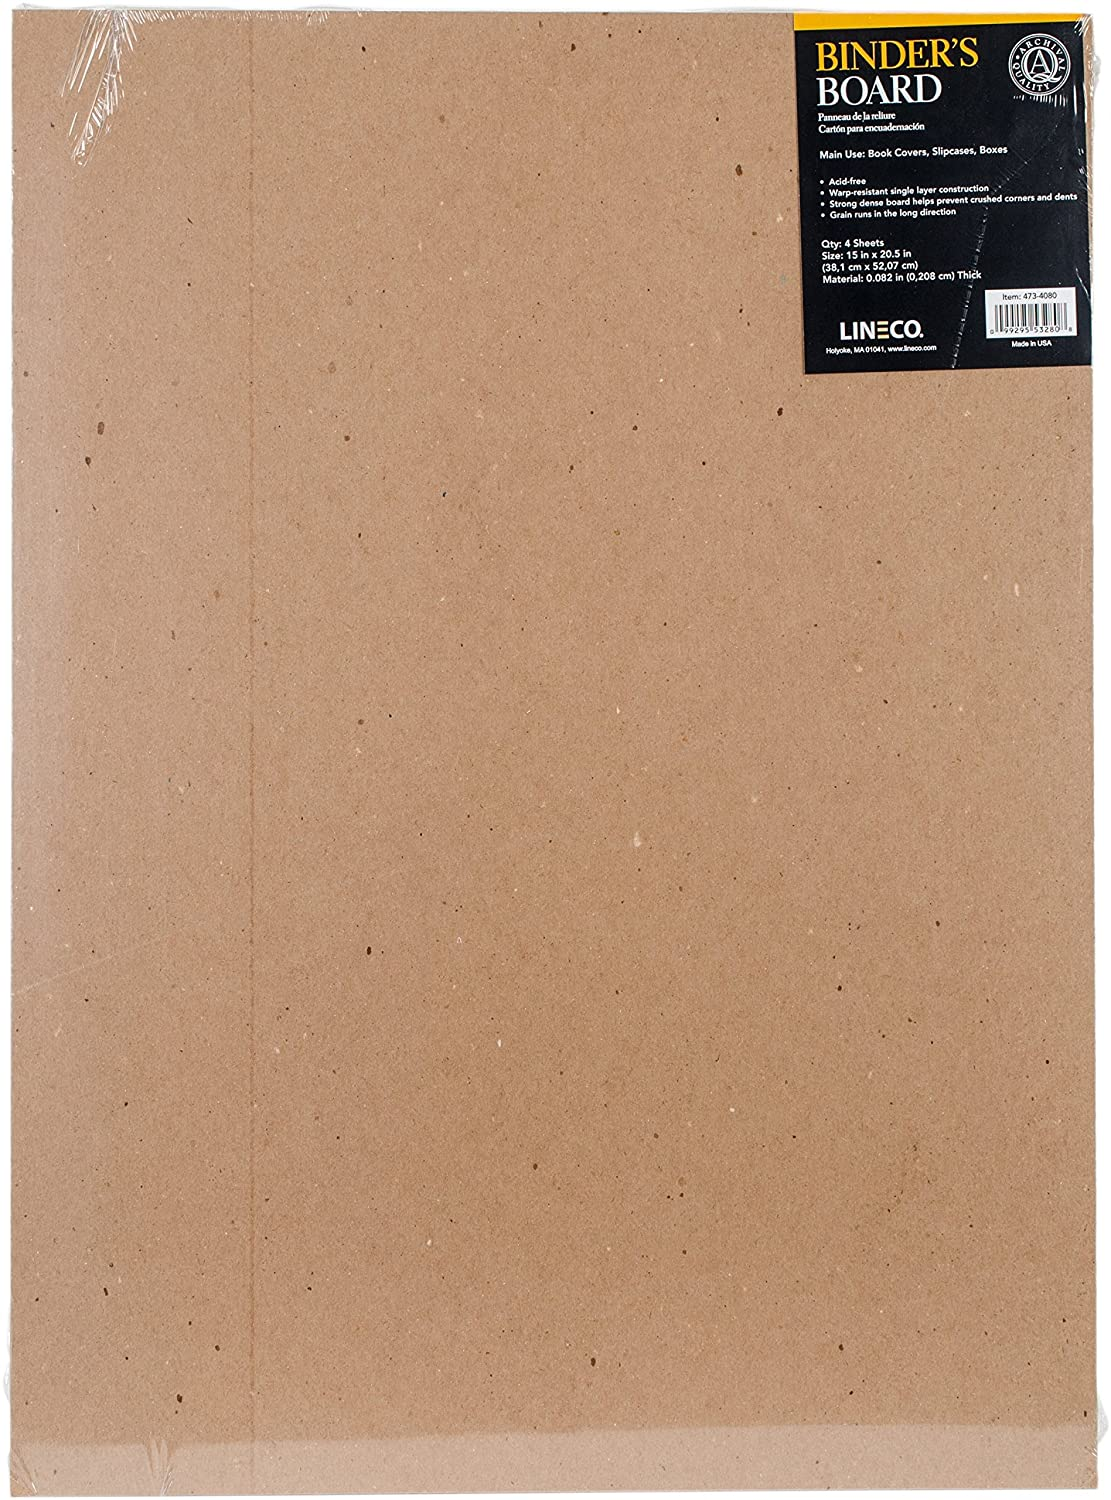 Lineco Binder's Board 15 in. x 20 1/2 in. 0.079 pack of 4 473-4080